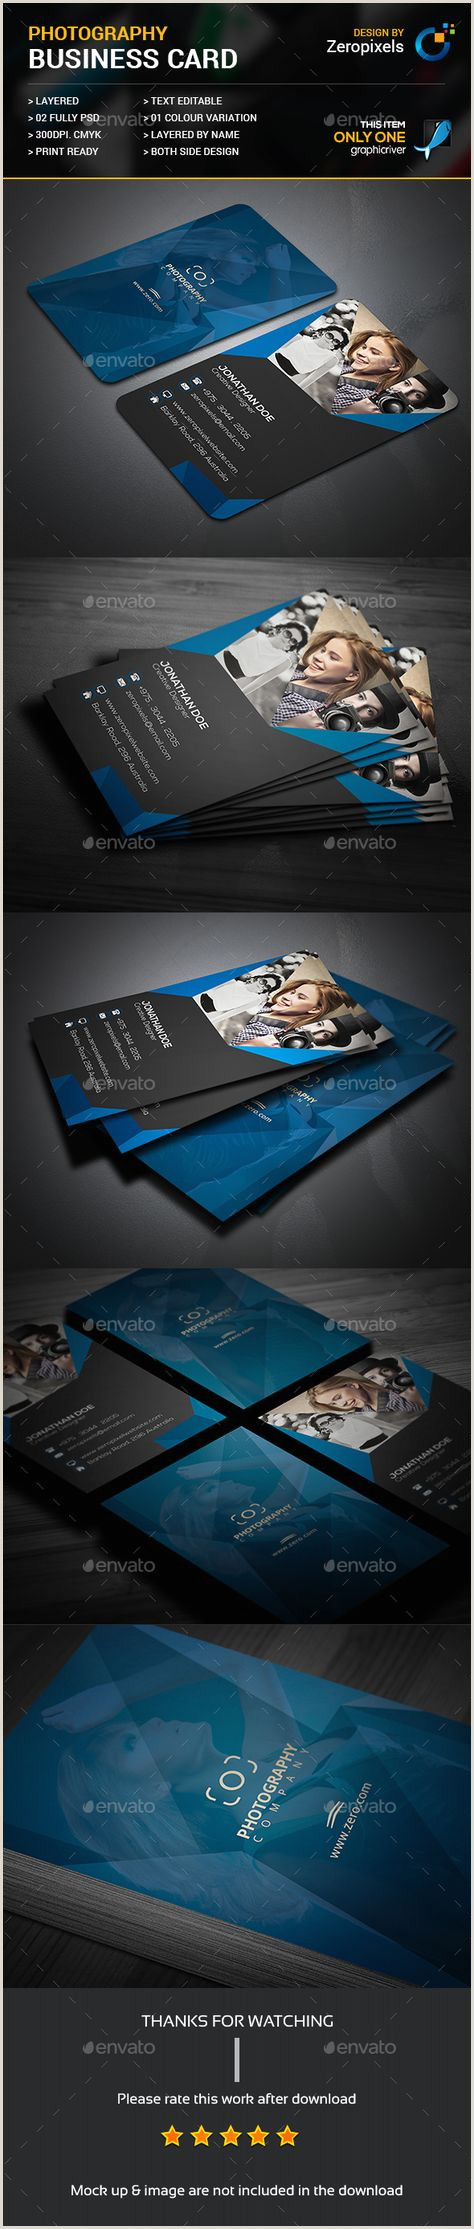 Photography Business Cards Samples Graphy Business Cards Template Free 70 Trendy Ideas